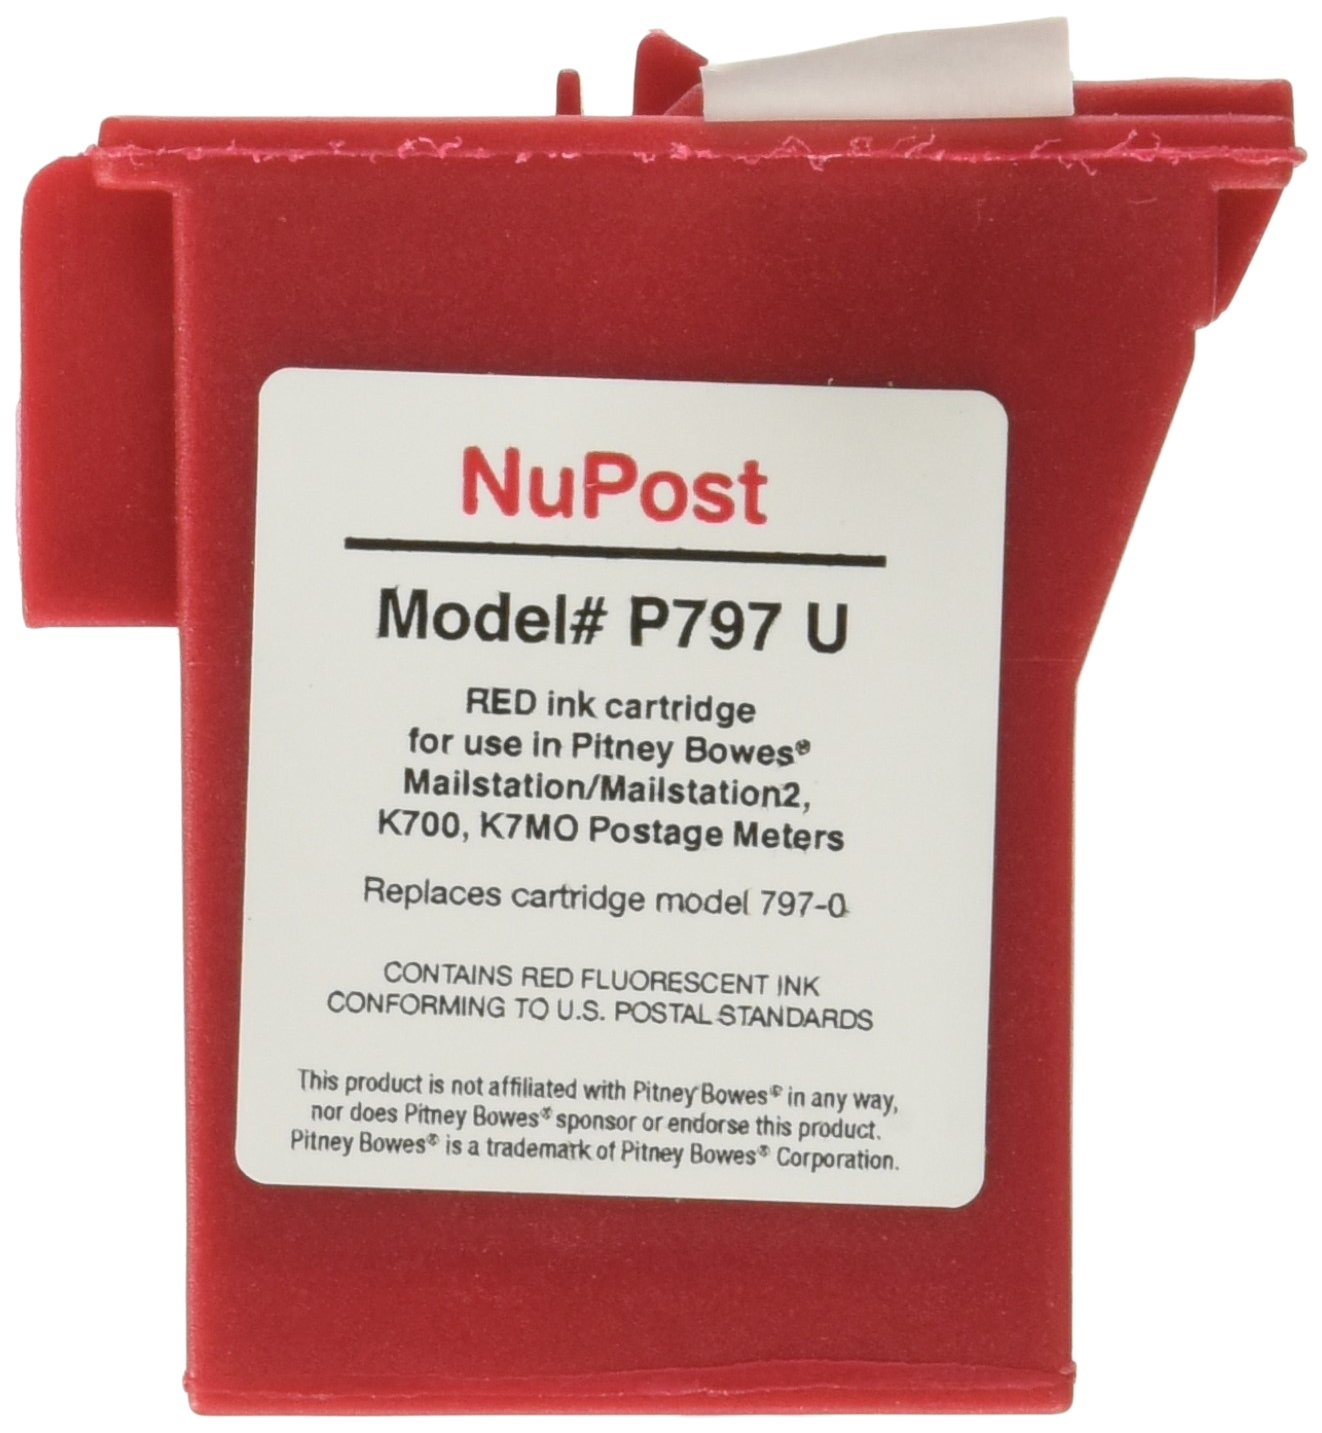 NuPost Non-OEM New Postage Meter Red Ink Cartridge for Pitney Bowes 797-0/ 797-Q/ 797-M